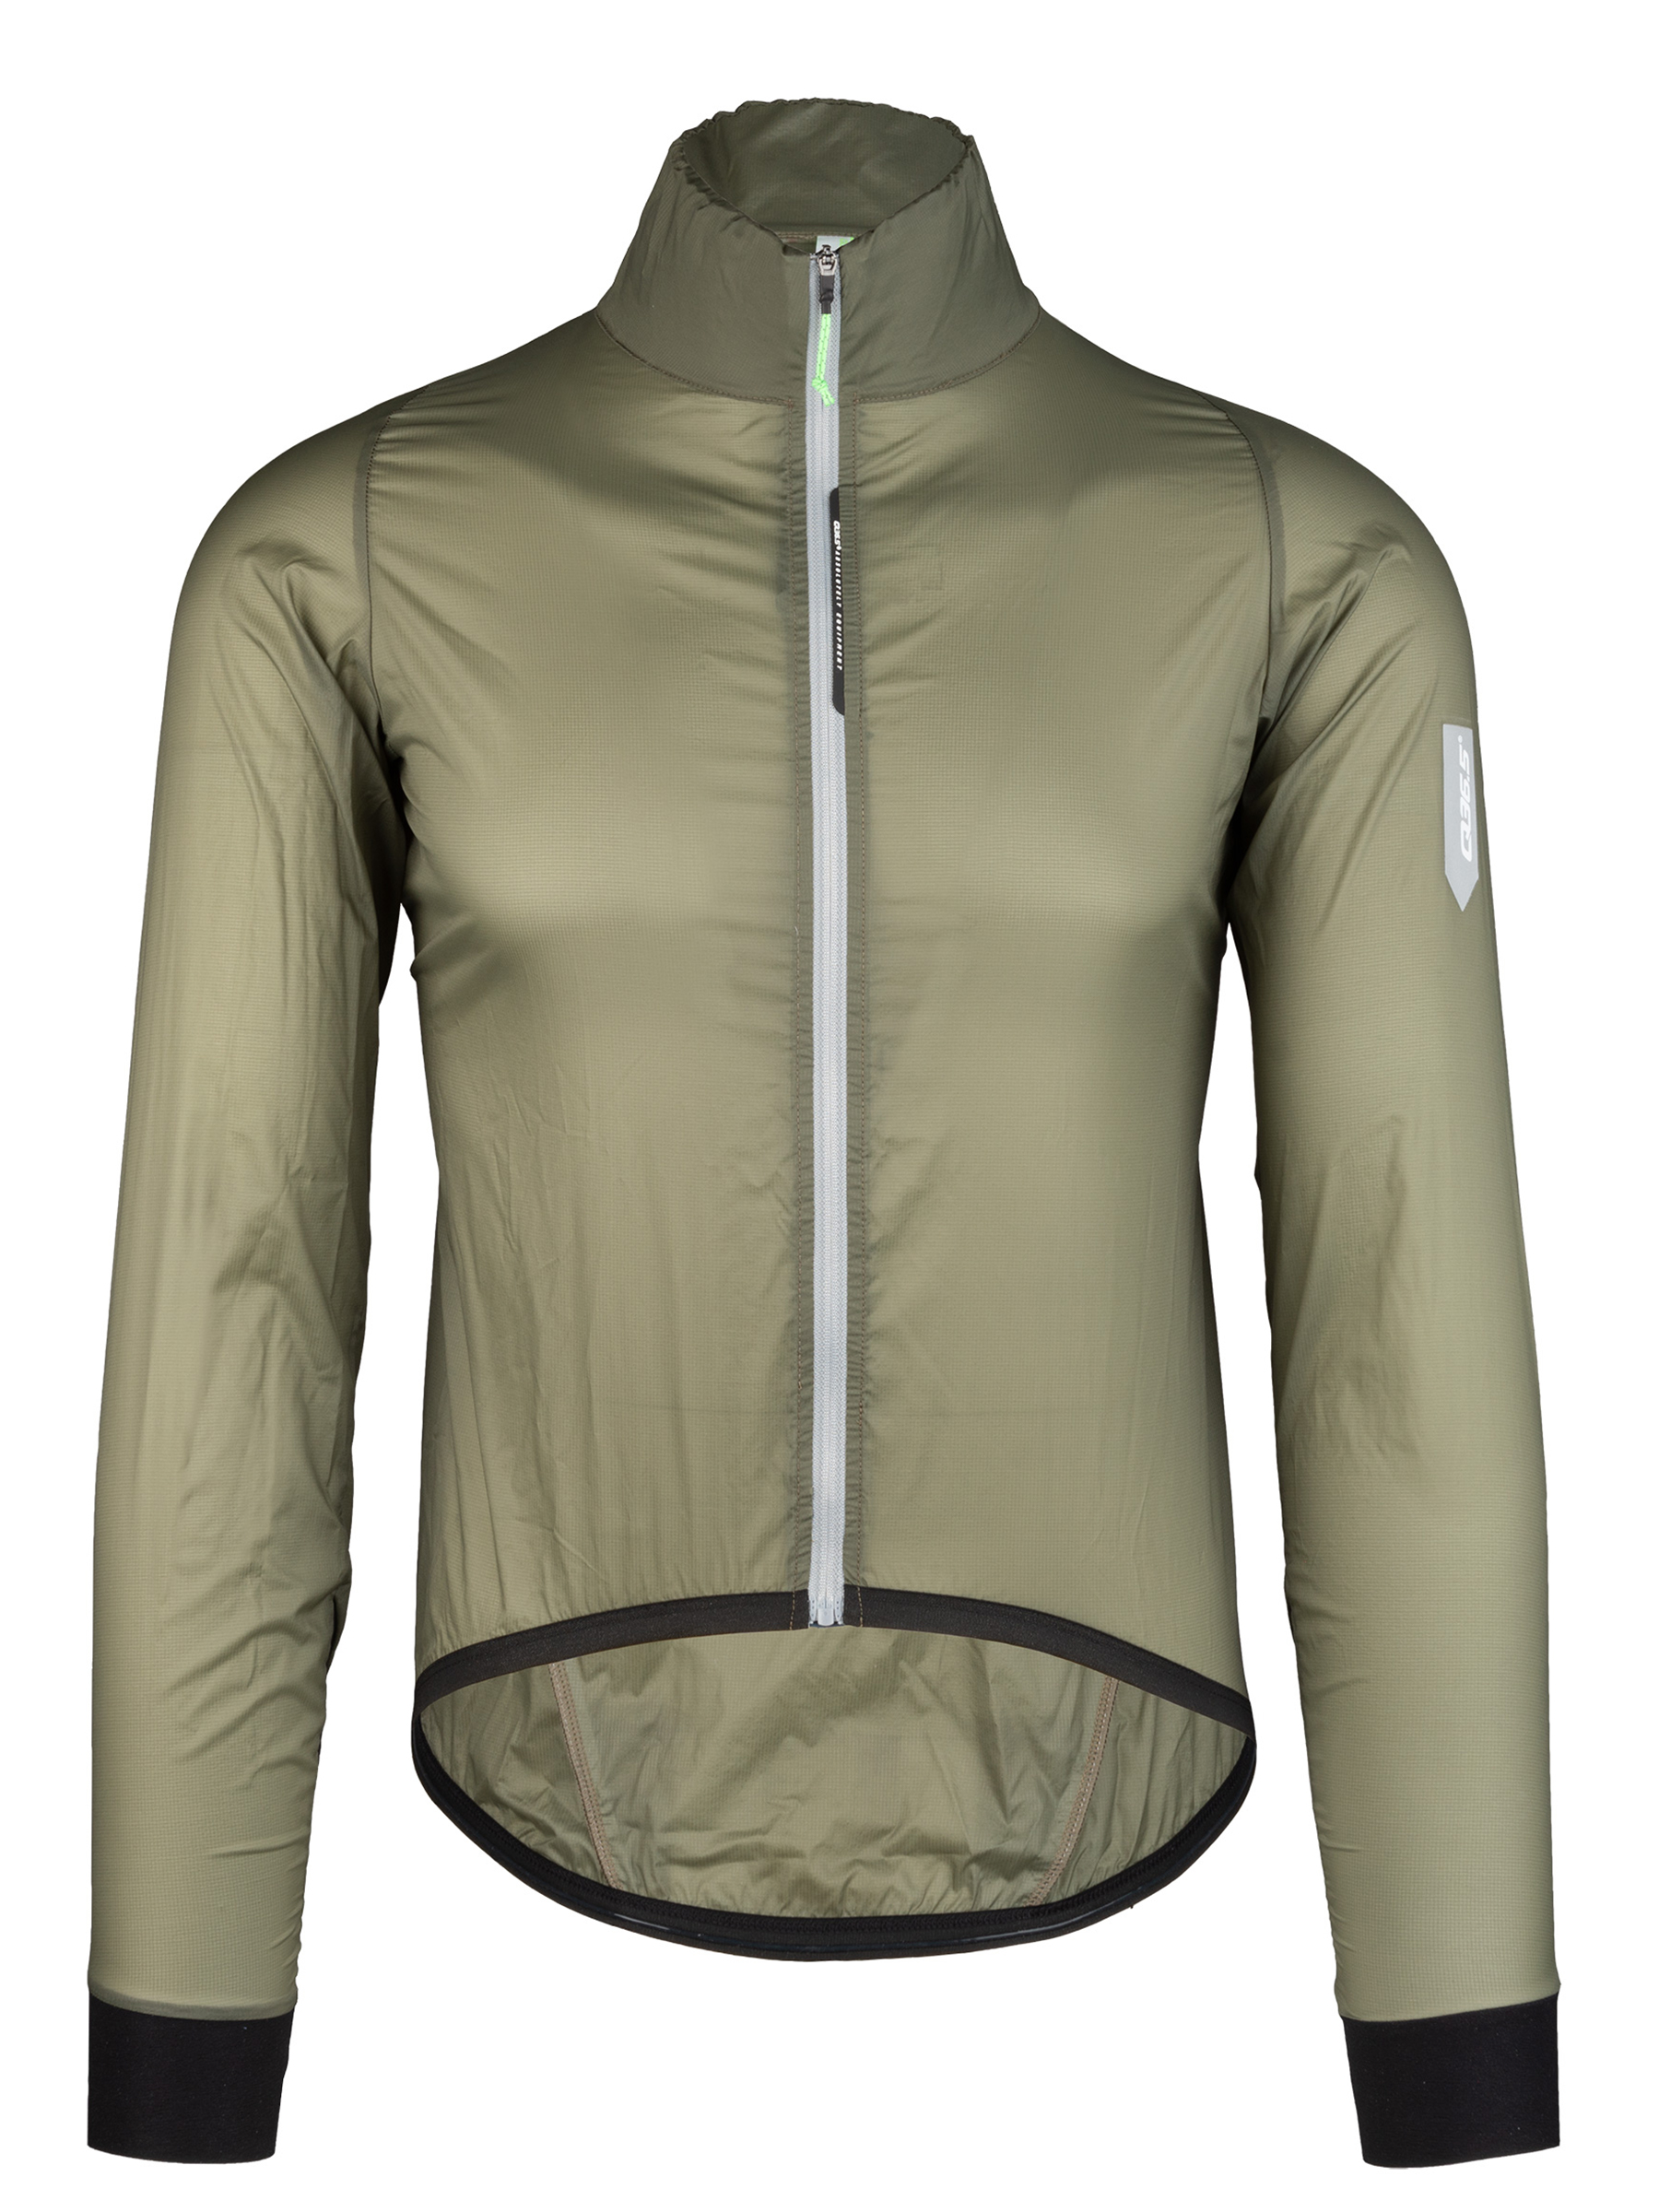 Cycling wind jacket Air shell olive green